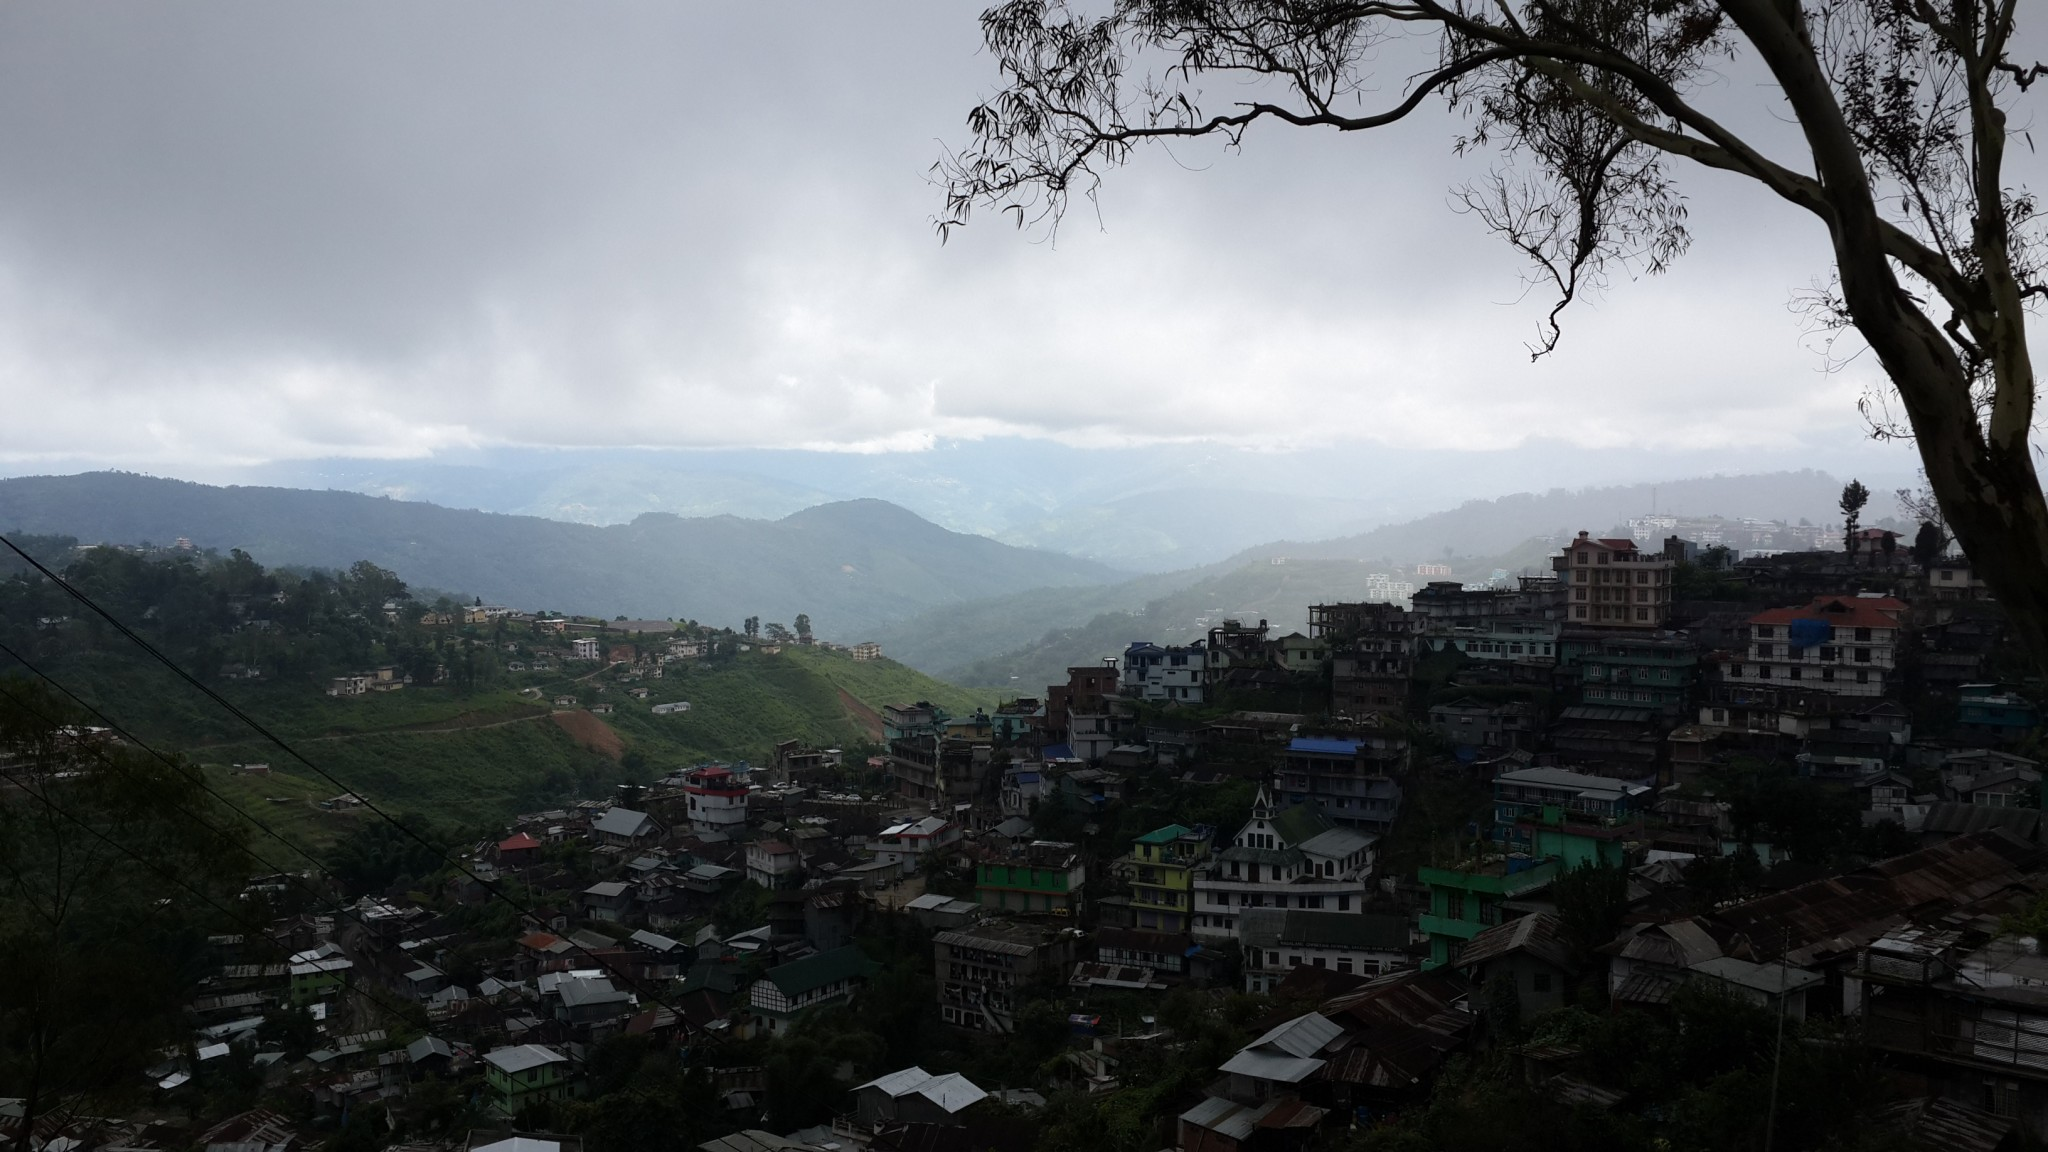 Looking out from Kohima in the morning.